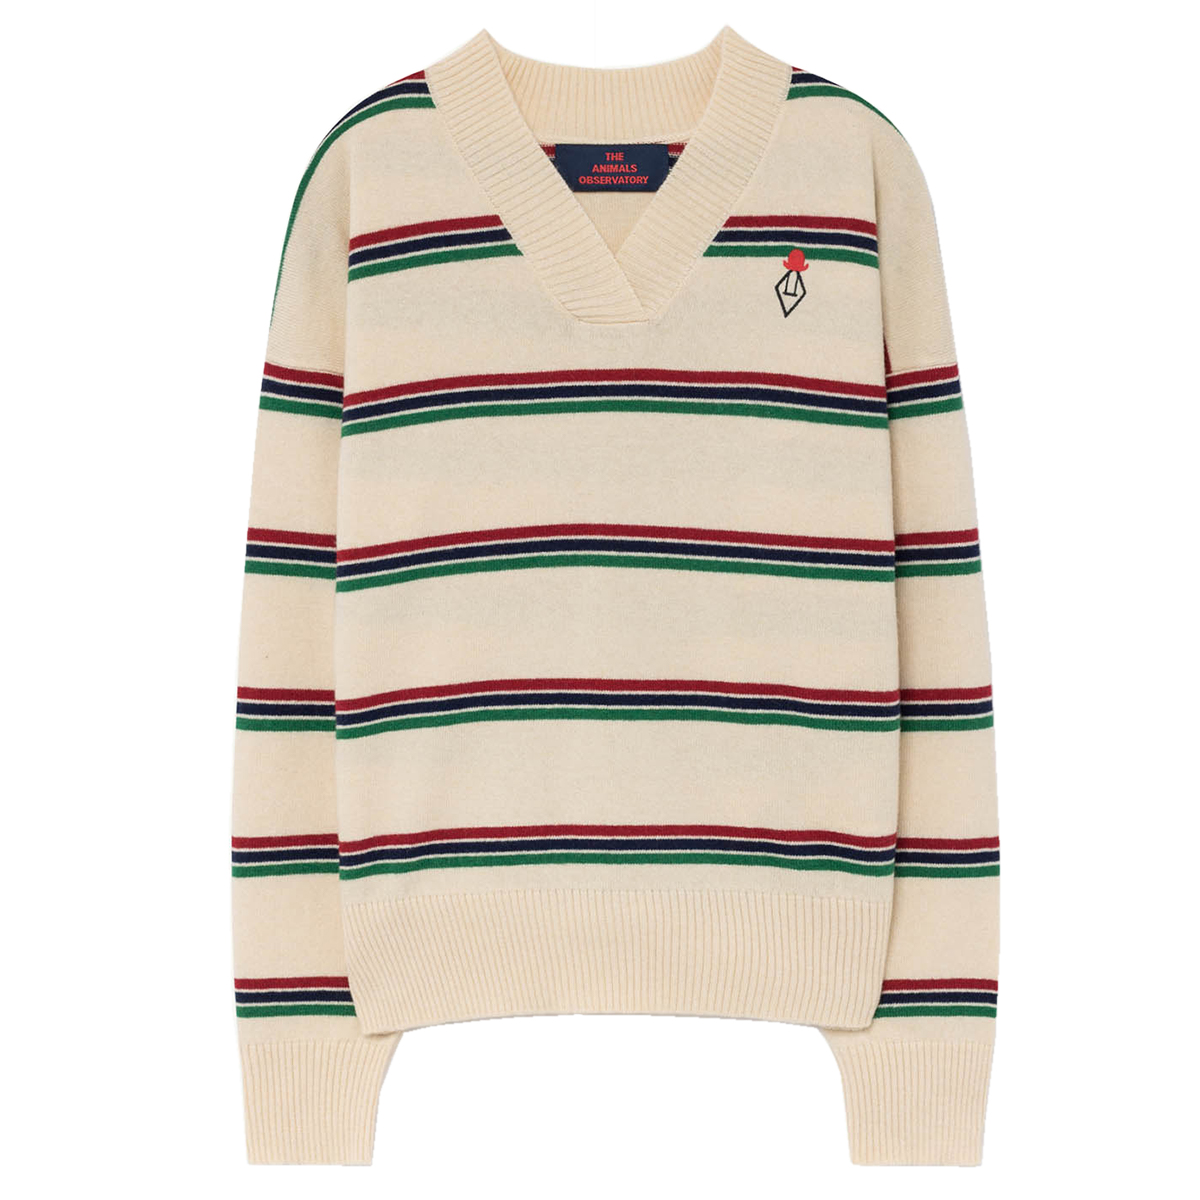 The Animals Observatory Toucan Knit Sweater in Cream Stripe